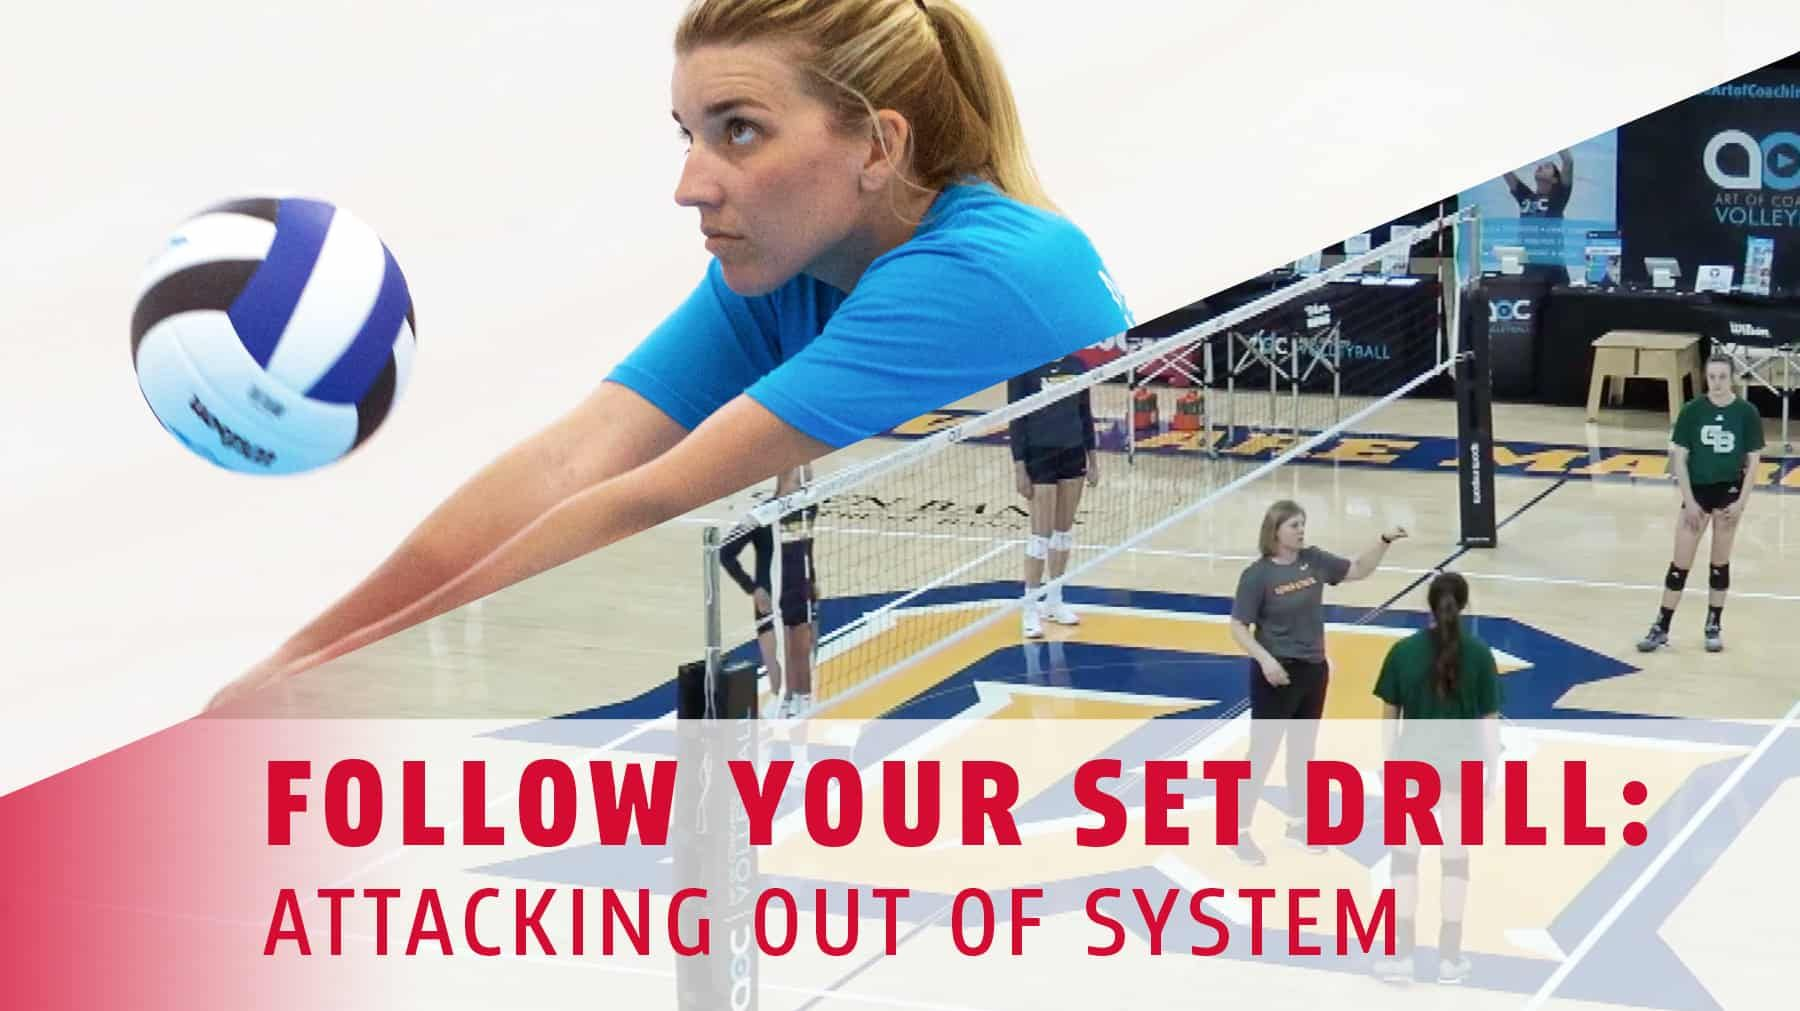 Follow Your Set Drill Attacking Out Of System In 2020 Coaching Volleyball Volleyball Workouts Volleyball Training